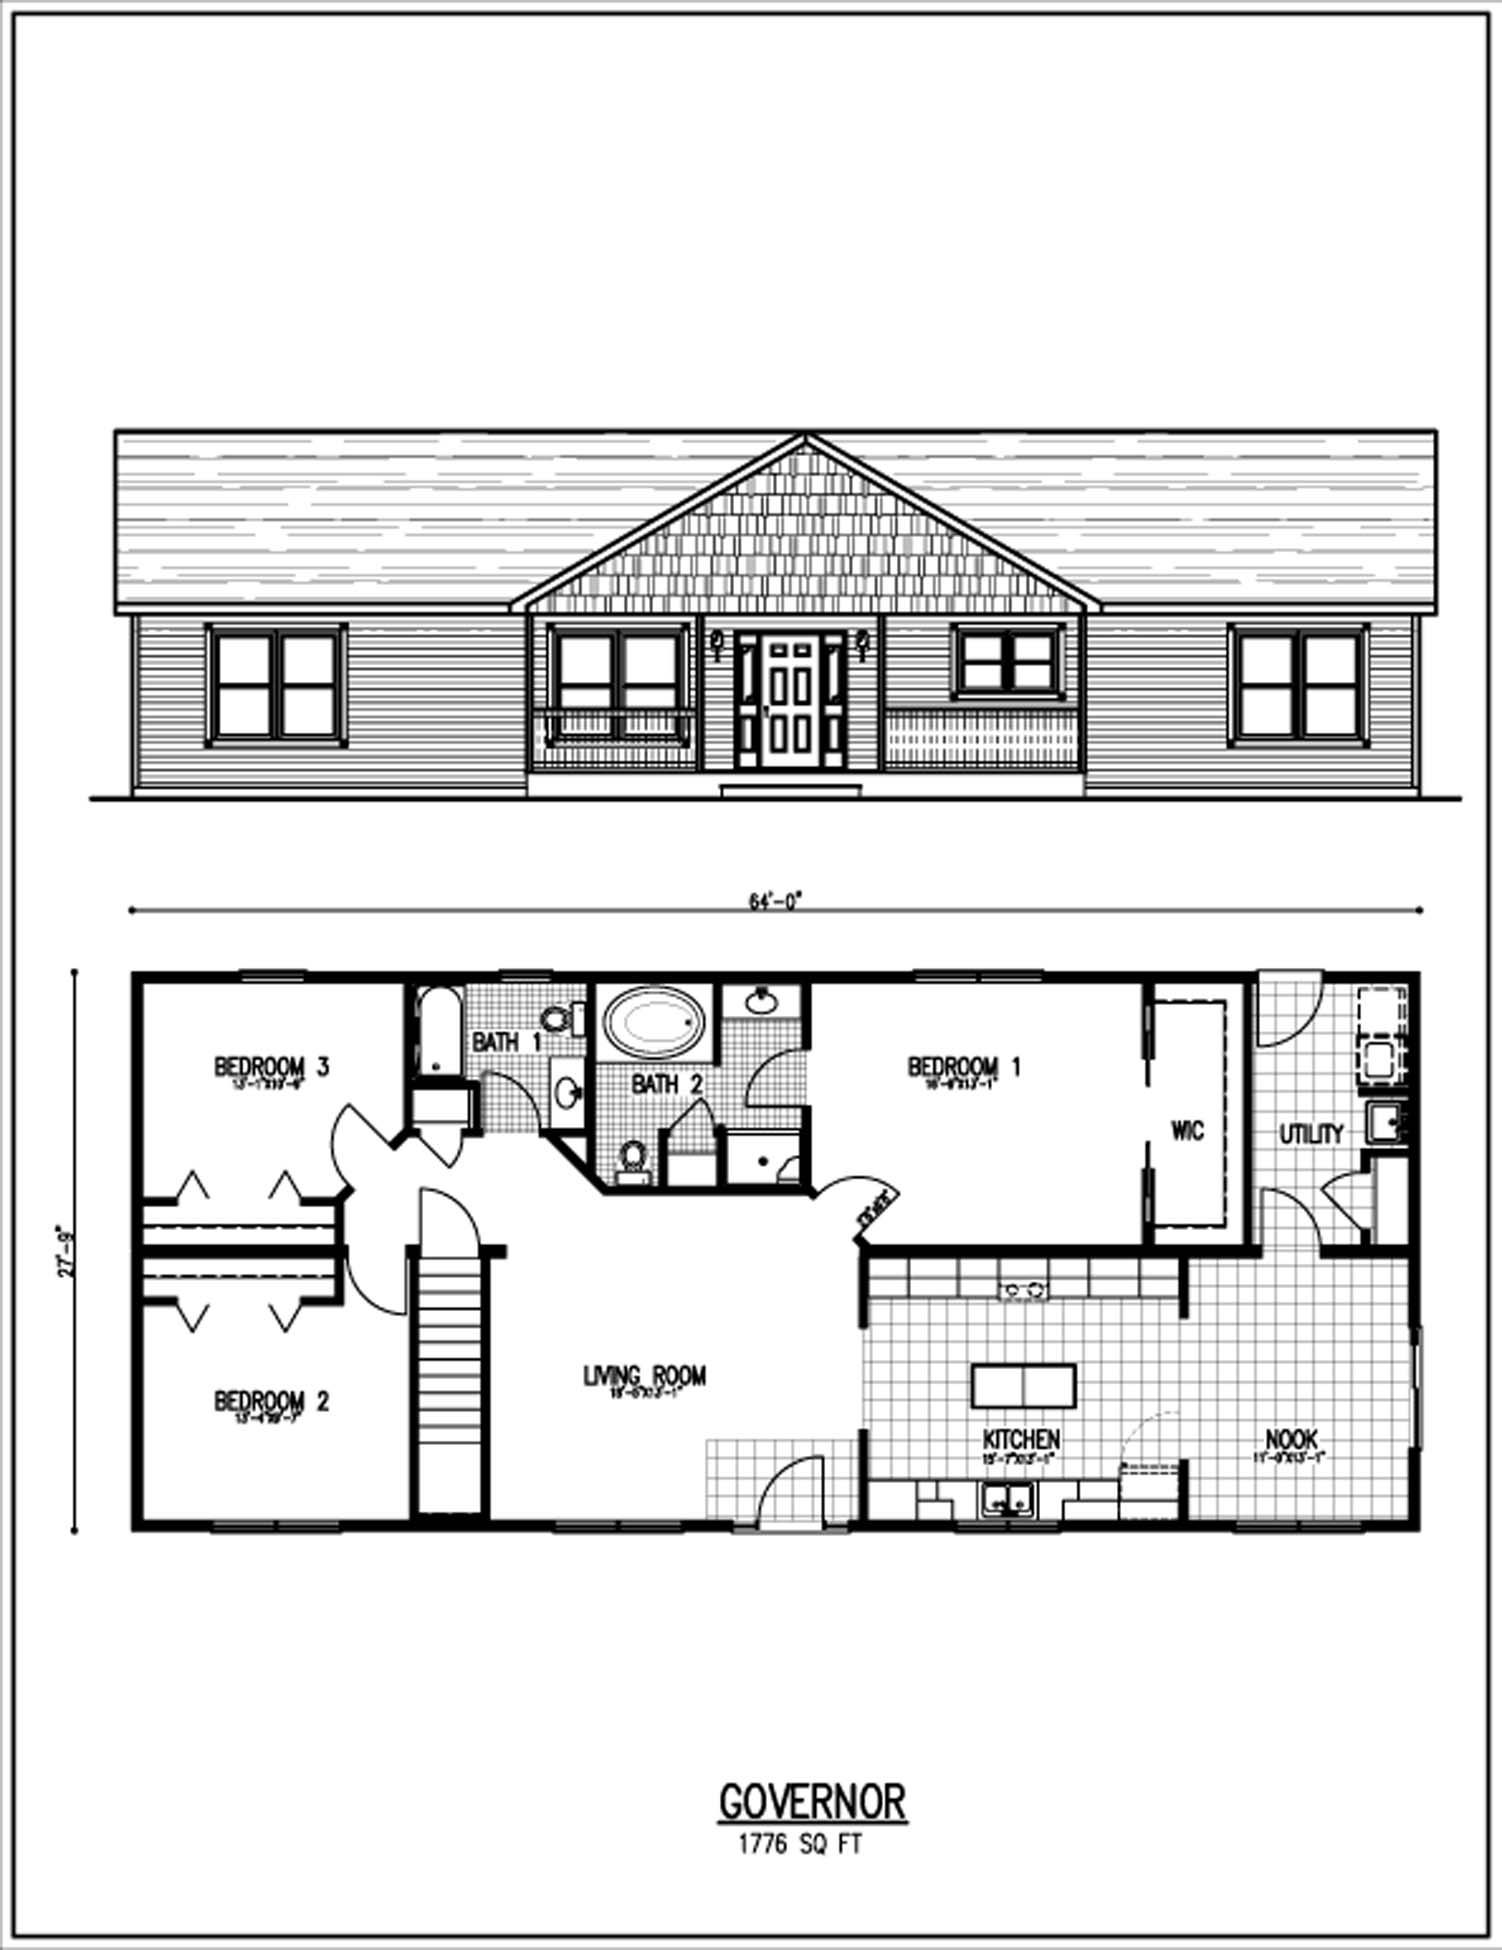 Floor plans by shawam082498 on pinterest floor plans for Ranch style home blueprints